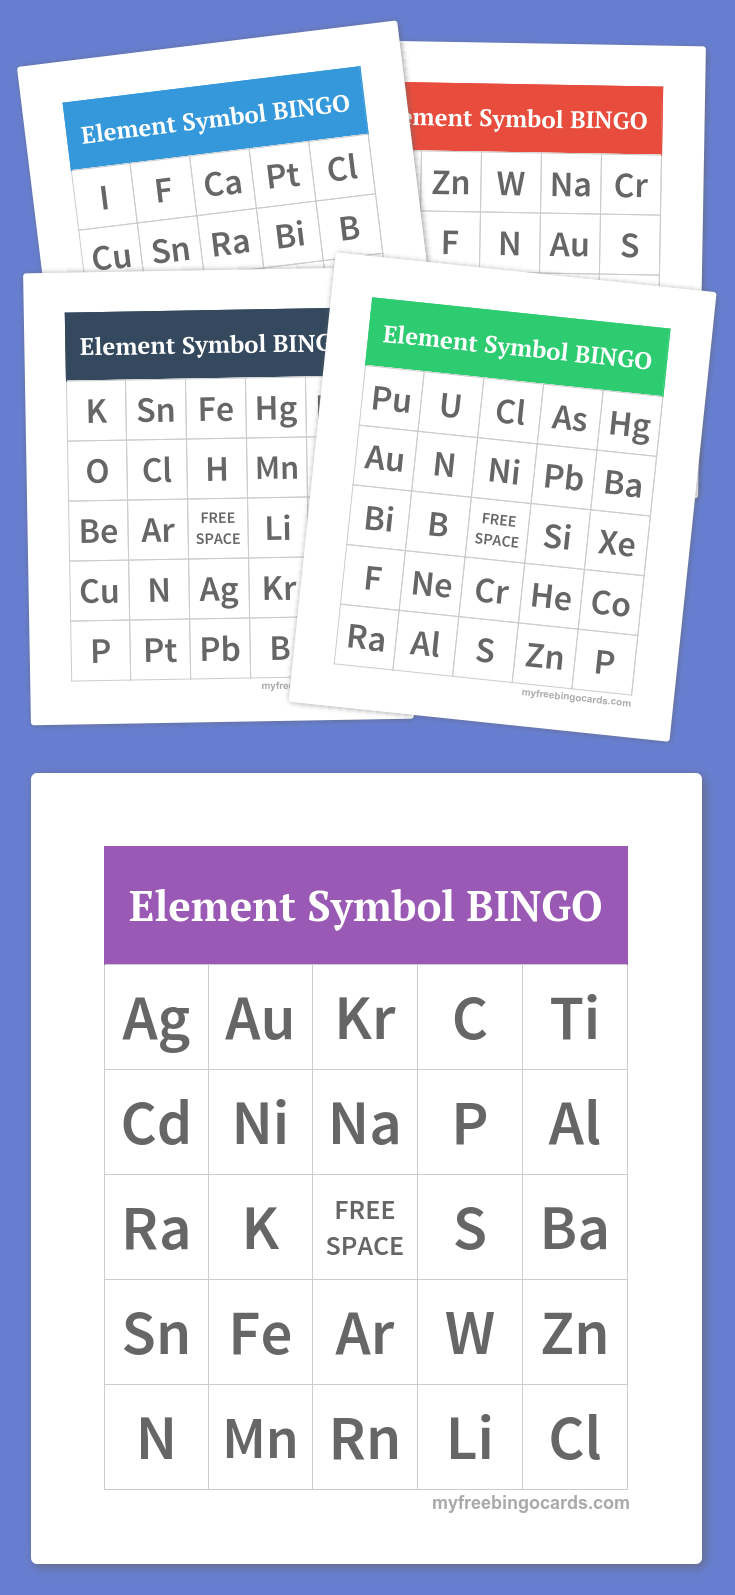 image regarding Printable Element Cards titled Periodic desk Section Logo BINGO The Periodic Desk